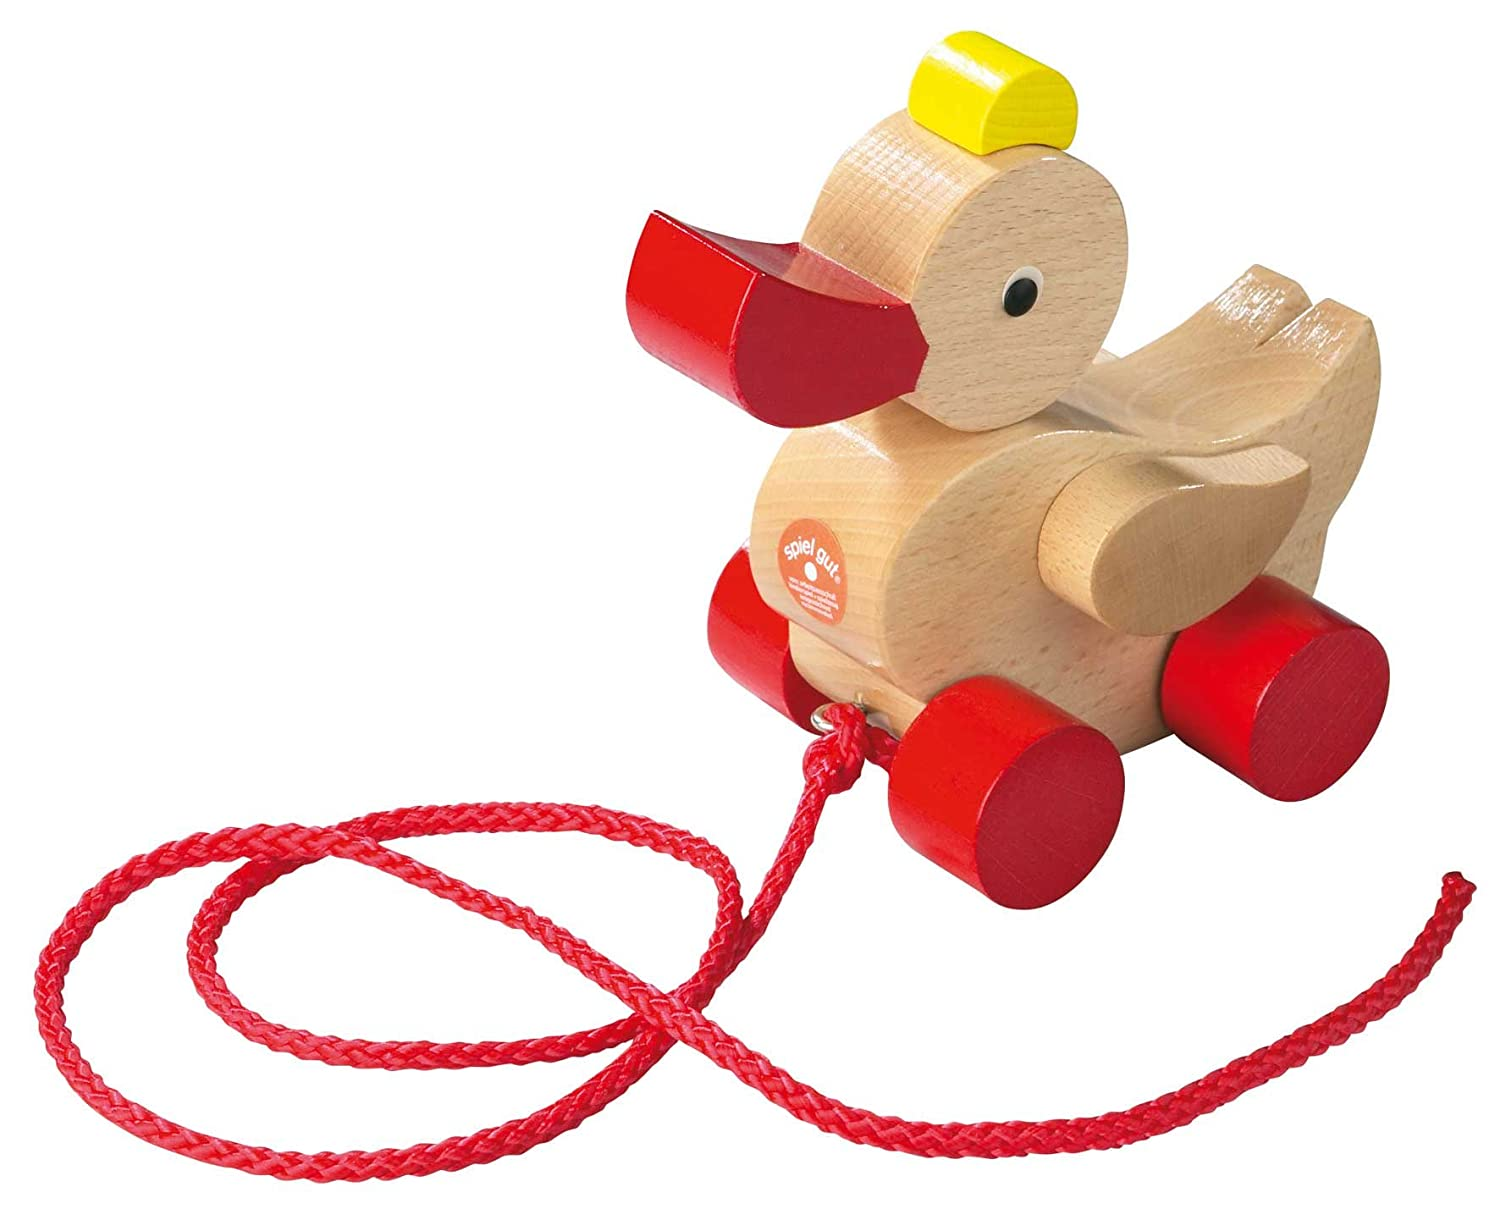 Haba Classic Duck Pull Toy A Nostalgic Wooden Toddler Toy Made in Germany